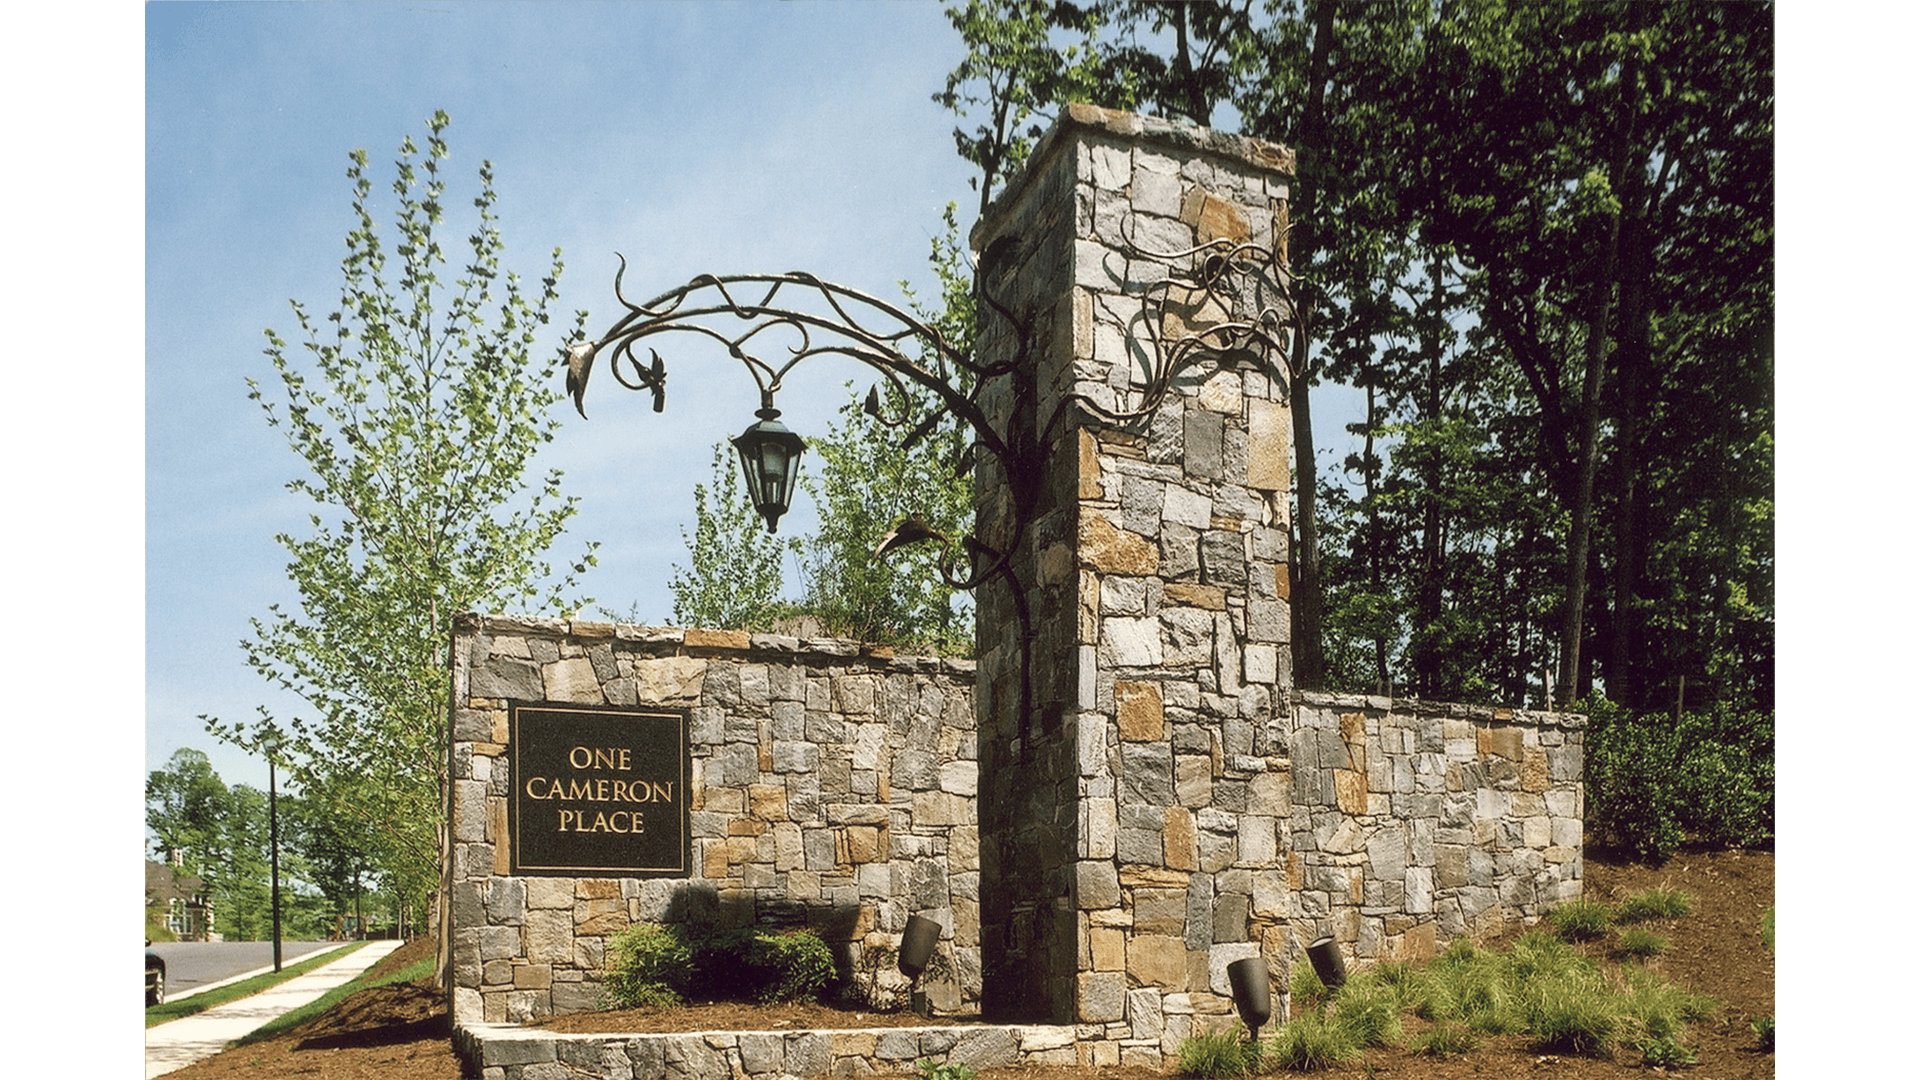 The entrance feature at One Cameron Place